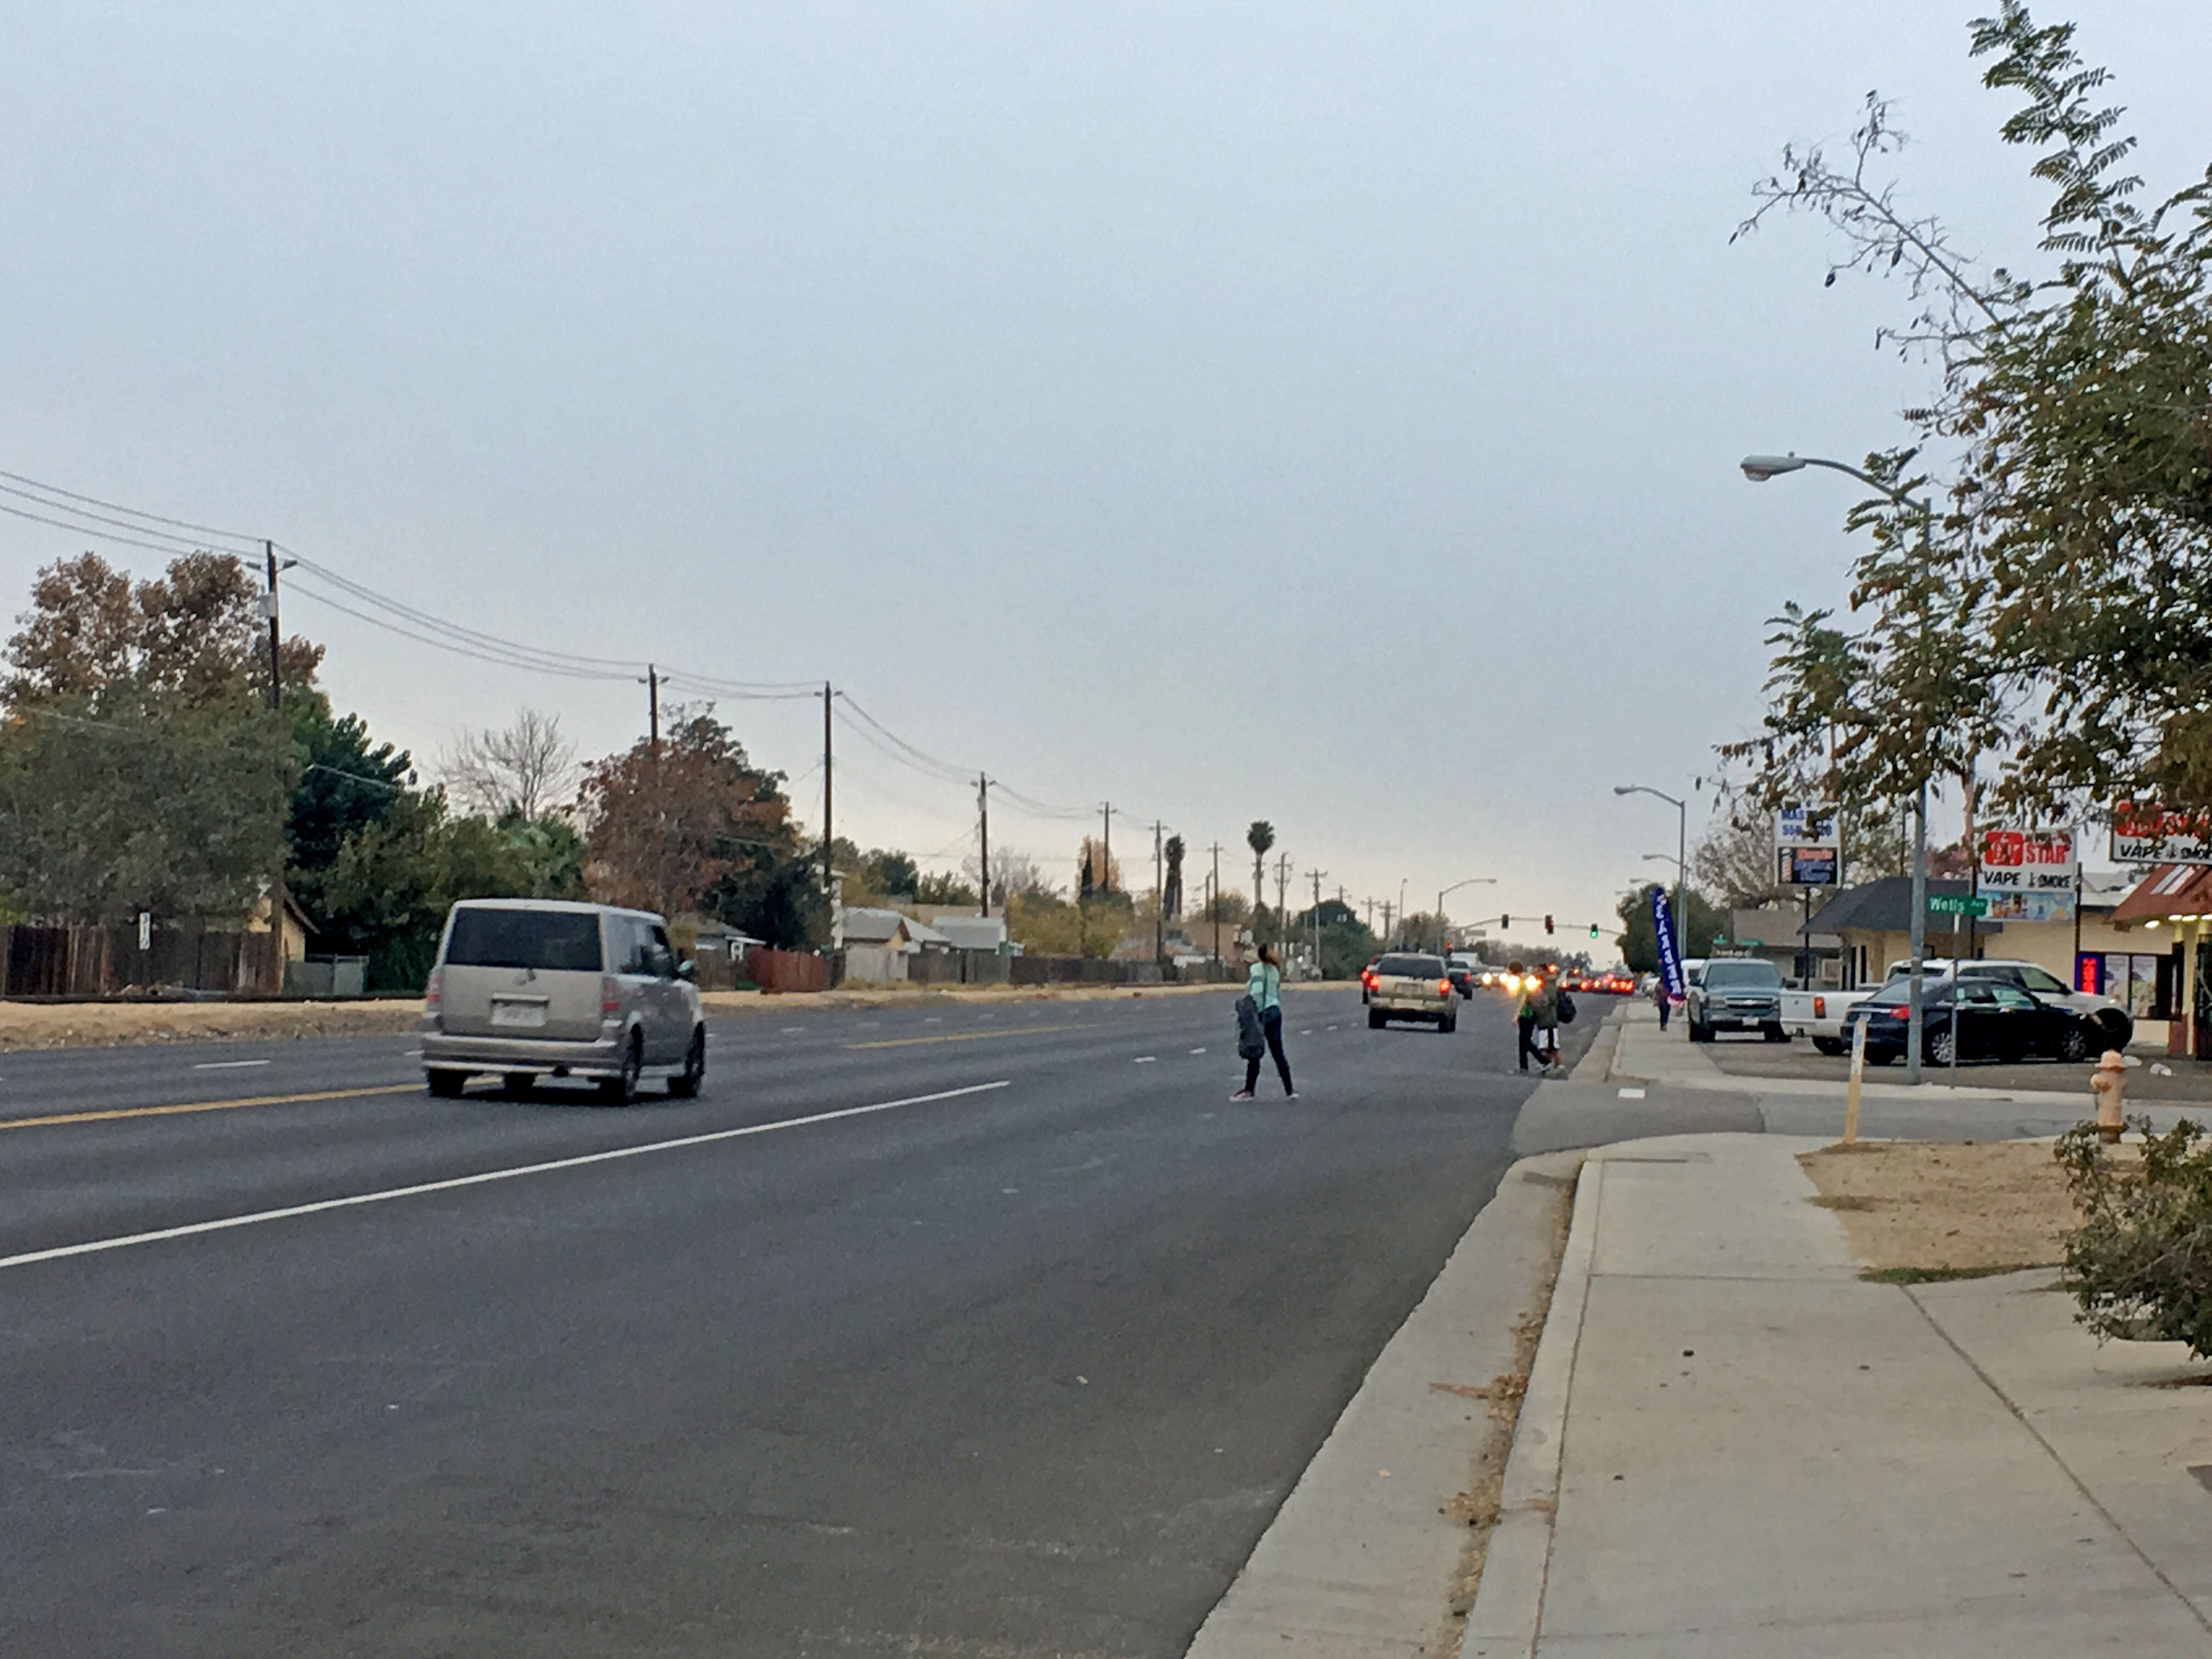 Kern County Holds Walk Audits to Identify Safe Walking